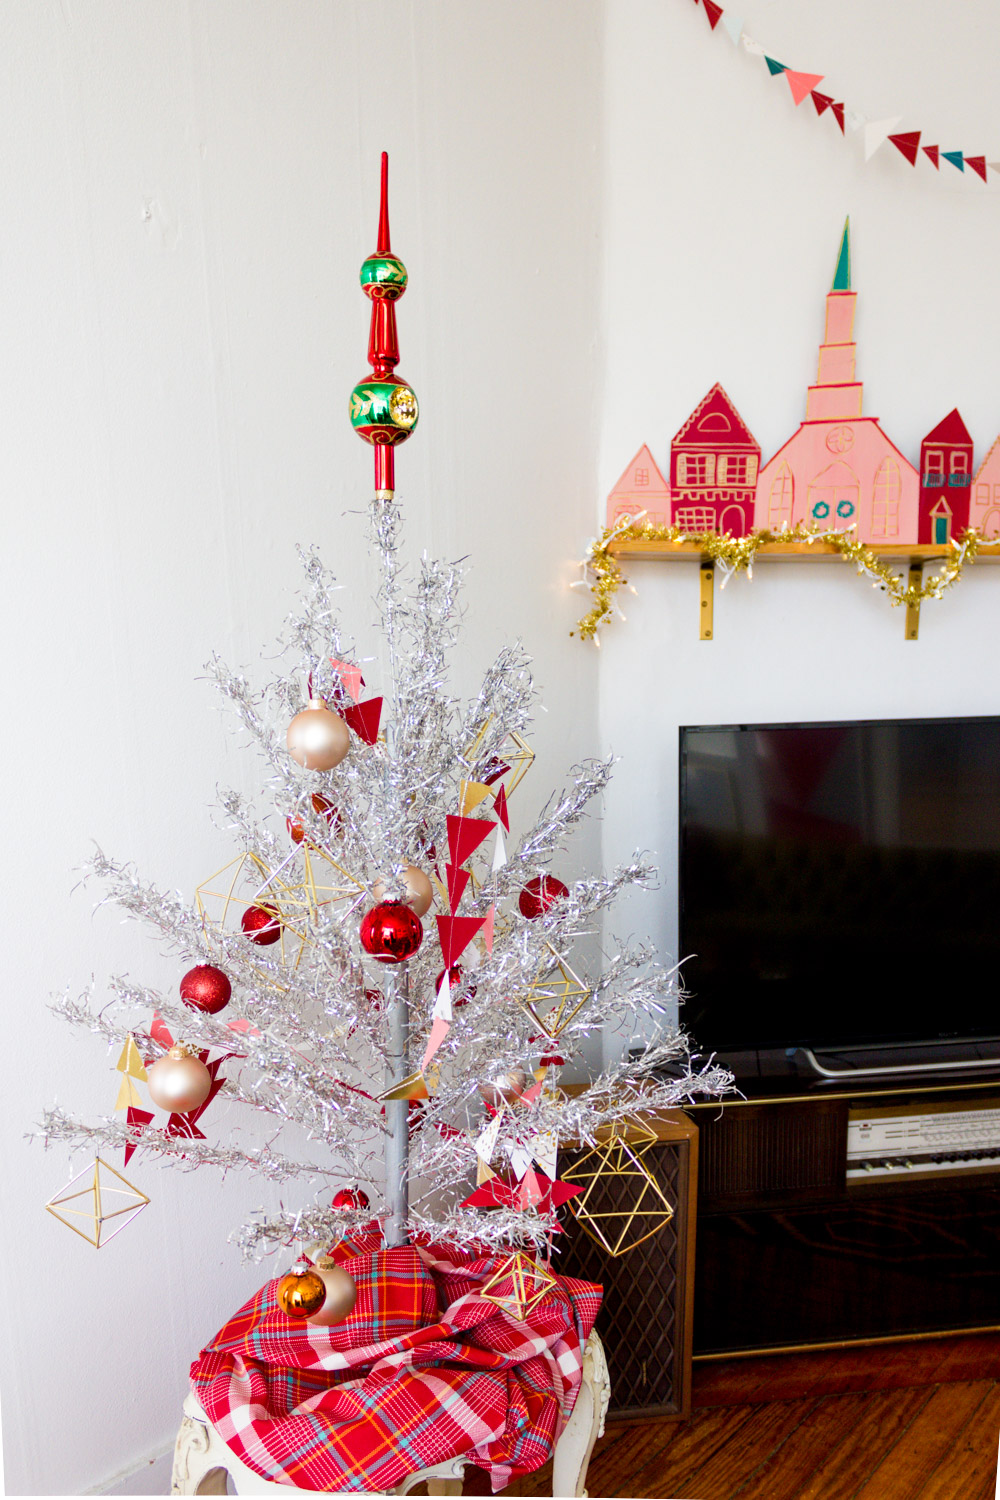 Vintage Aluminum Christmas Tree with Red and Pink Decorations